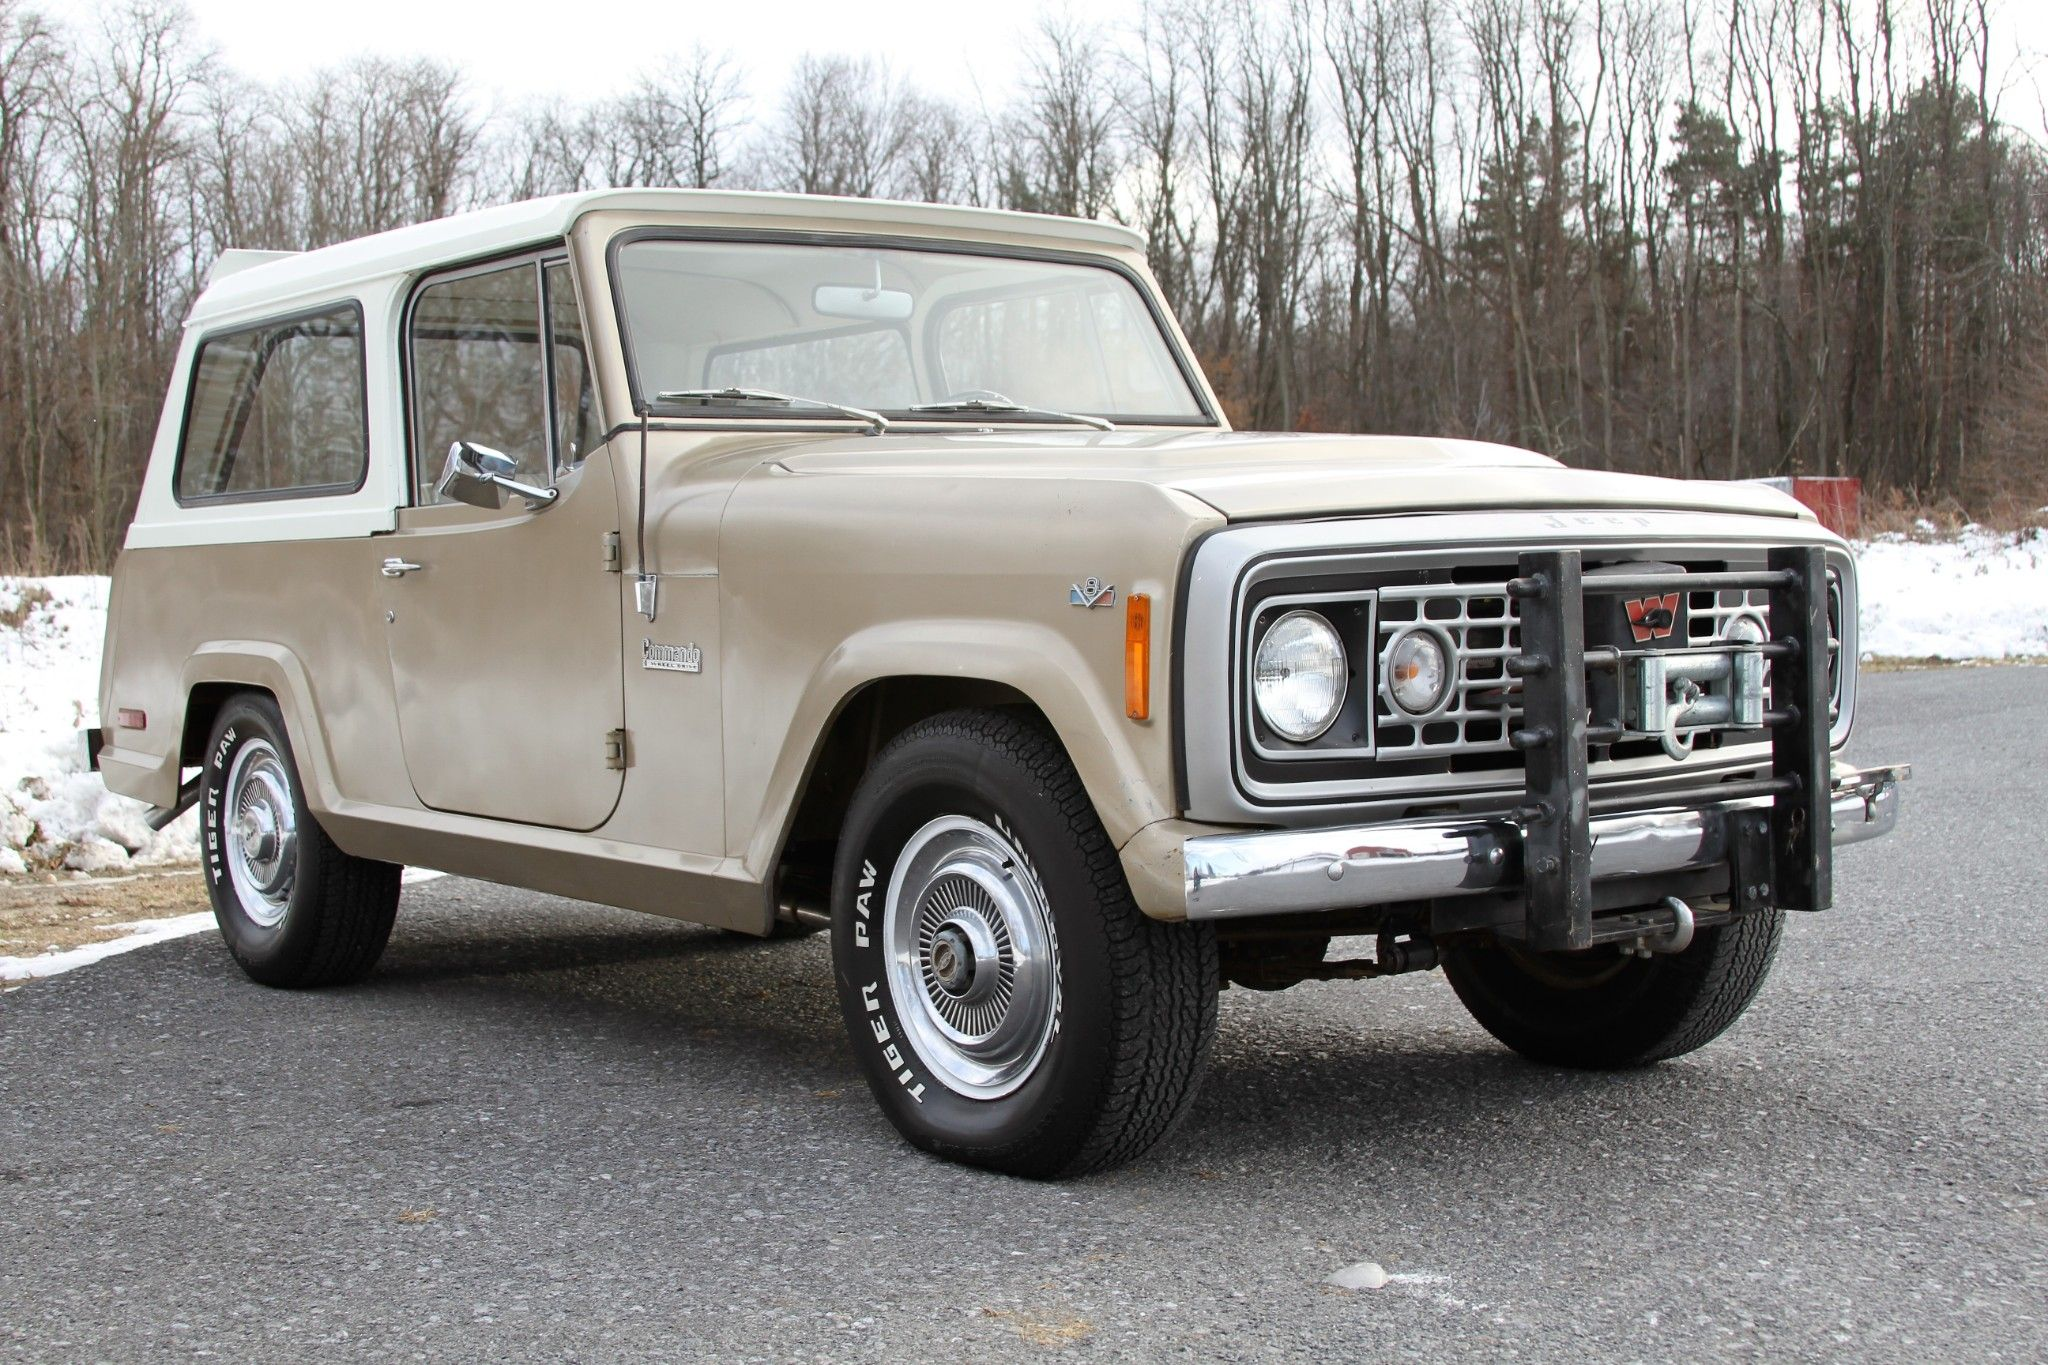 Miraculous You Must Buy This 72 Jeep Commando The Least Jeep Looking Jeep Wiring Cloud Peadfoxcilixyz